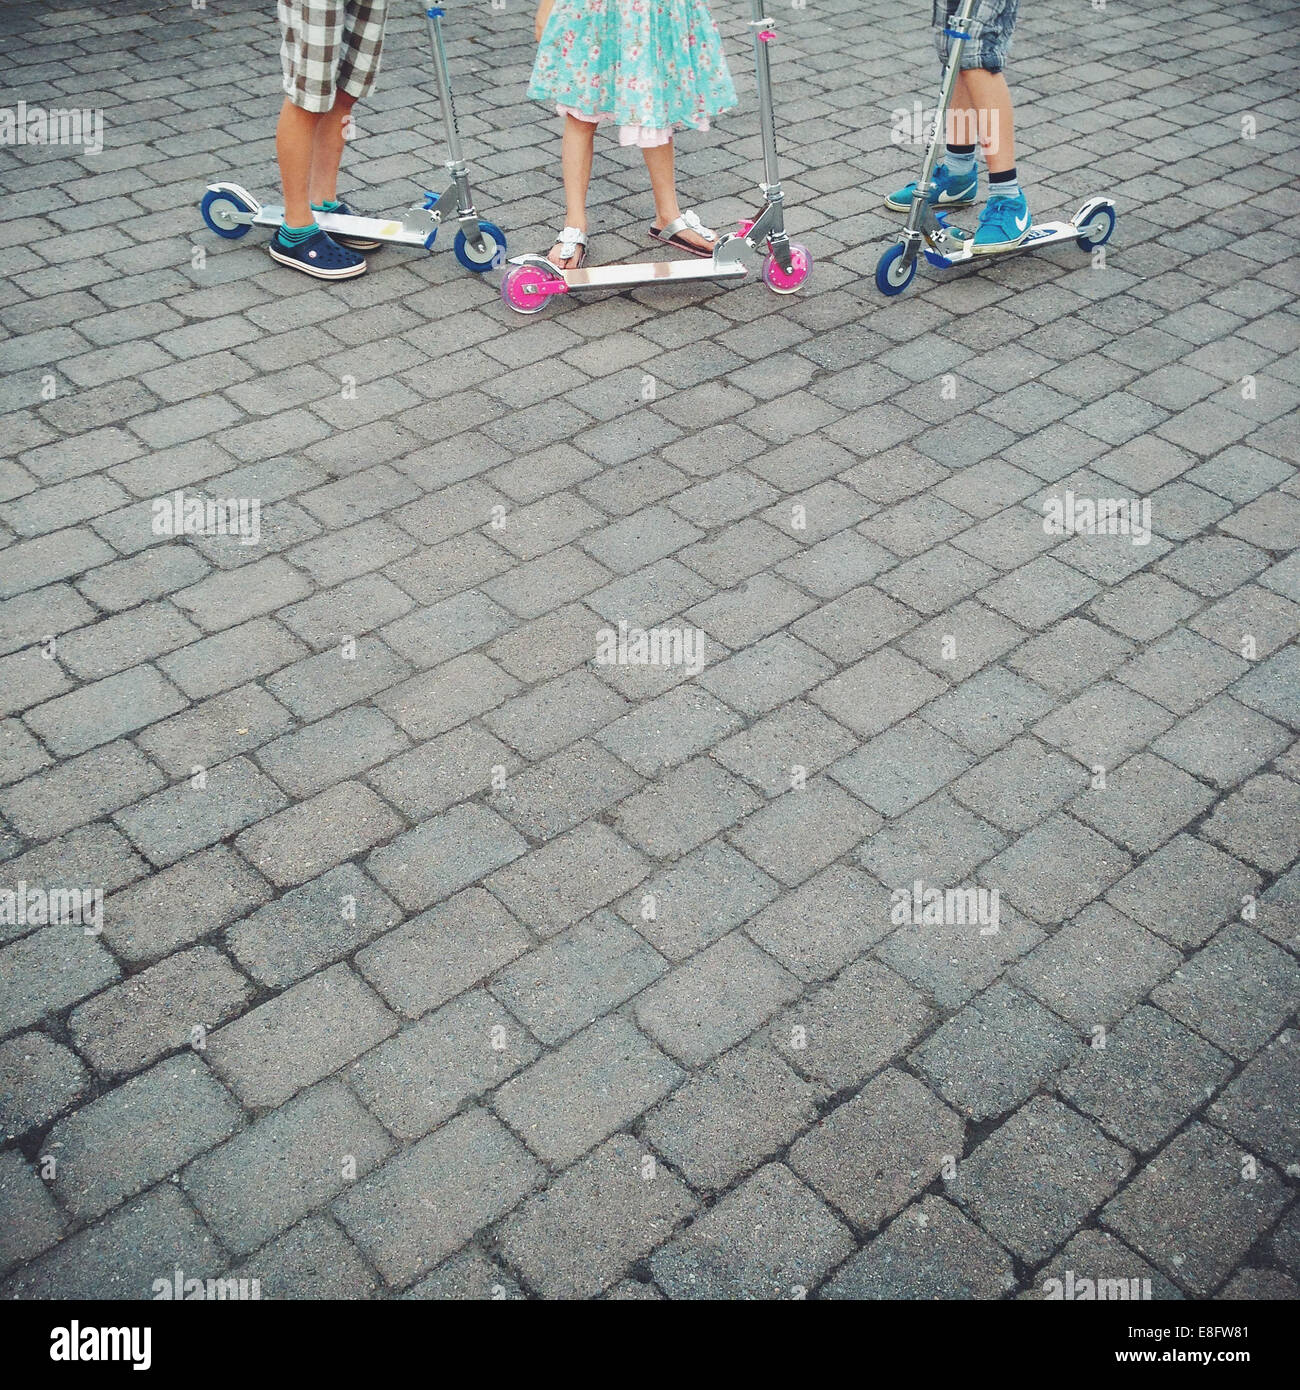 Close up of children (10-11, 12-13) standing next to scooters - Stock Image